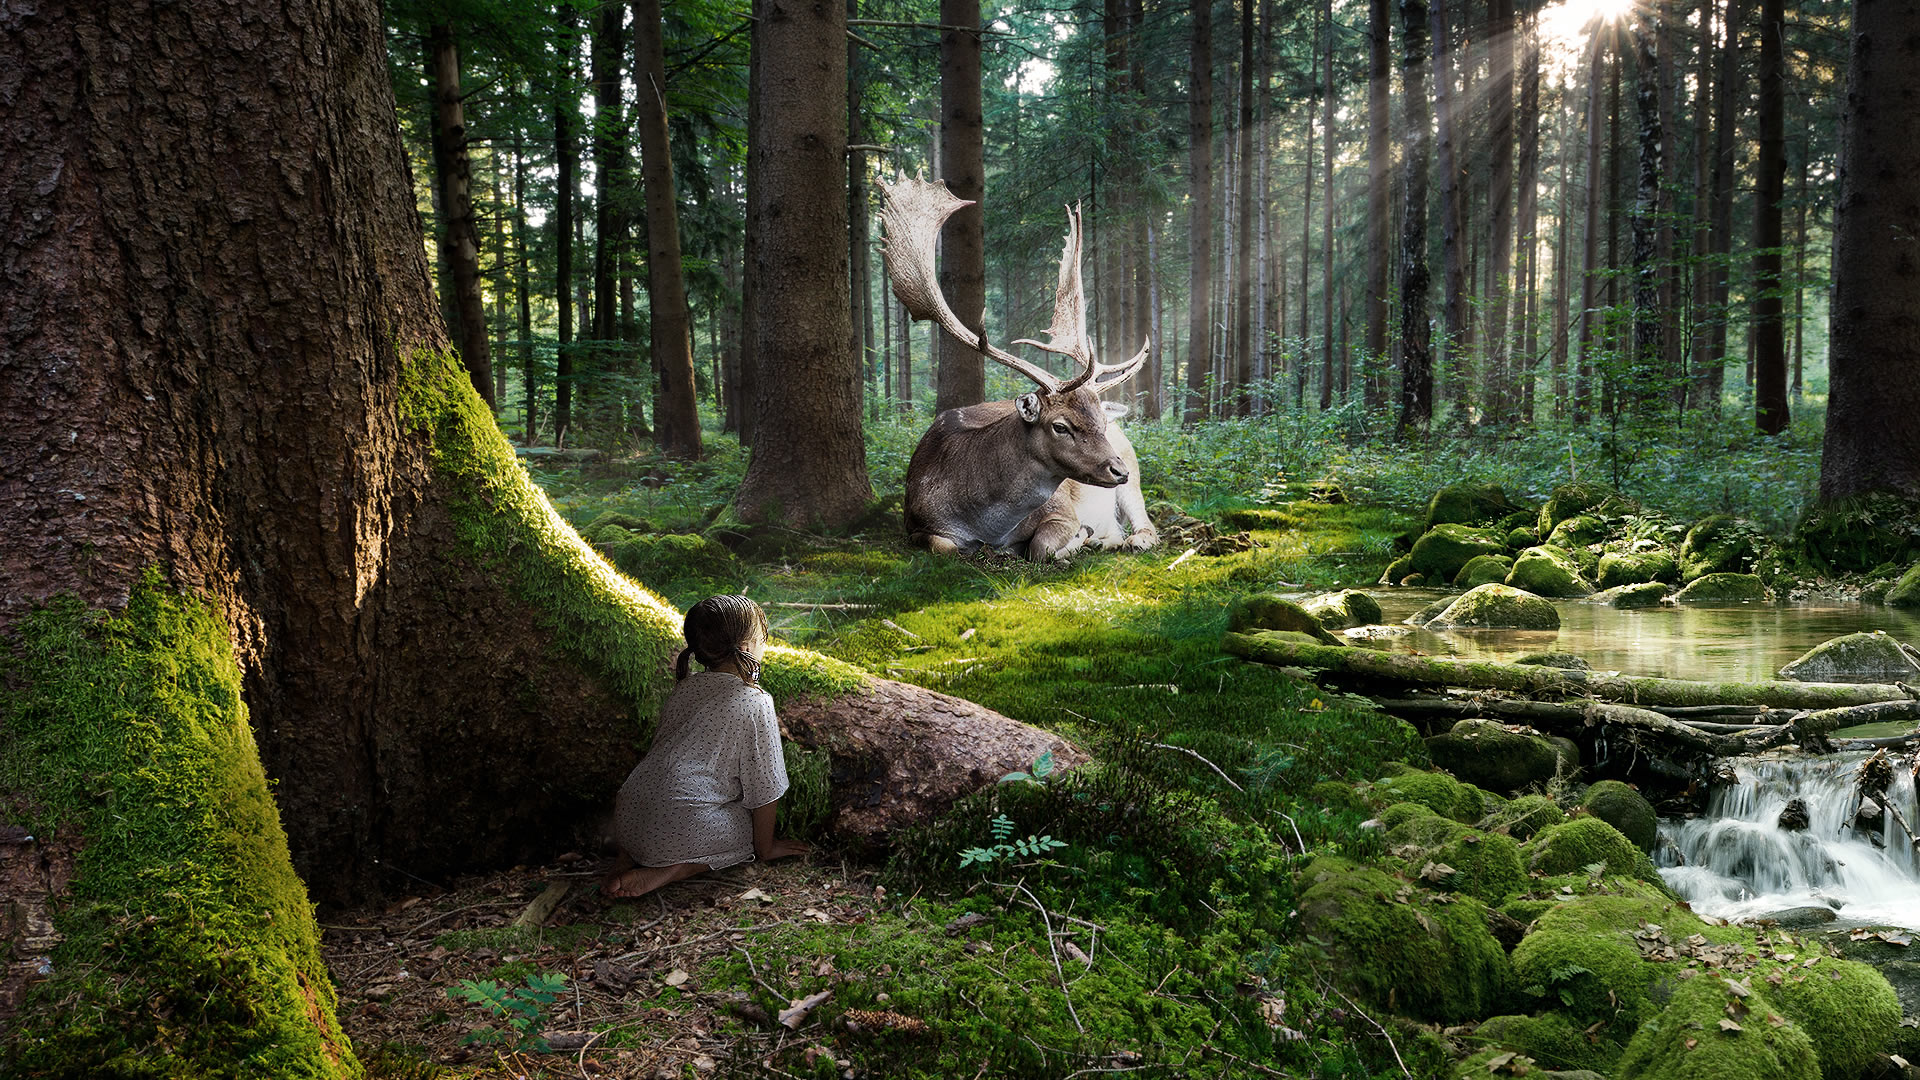 group of hd 1080p wallpaper of forest home